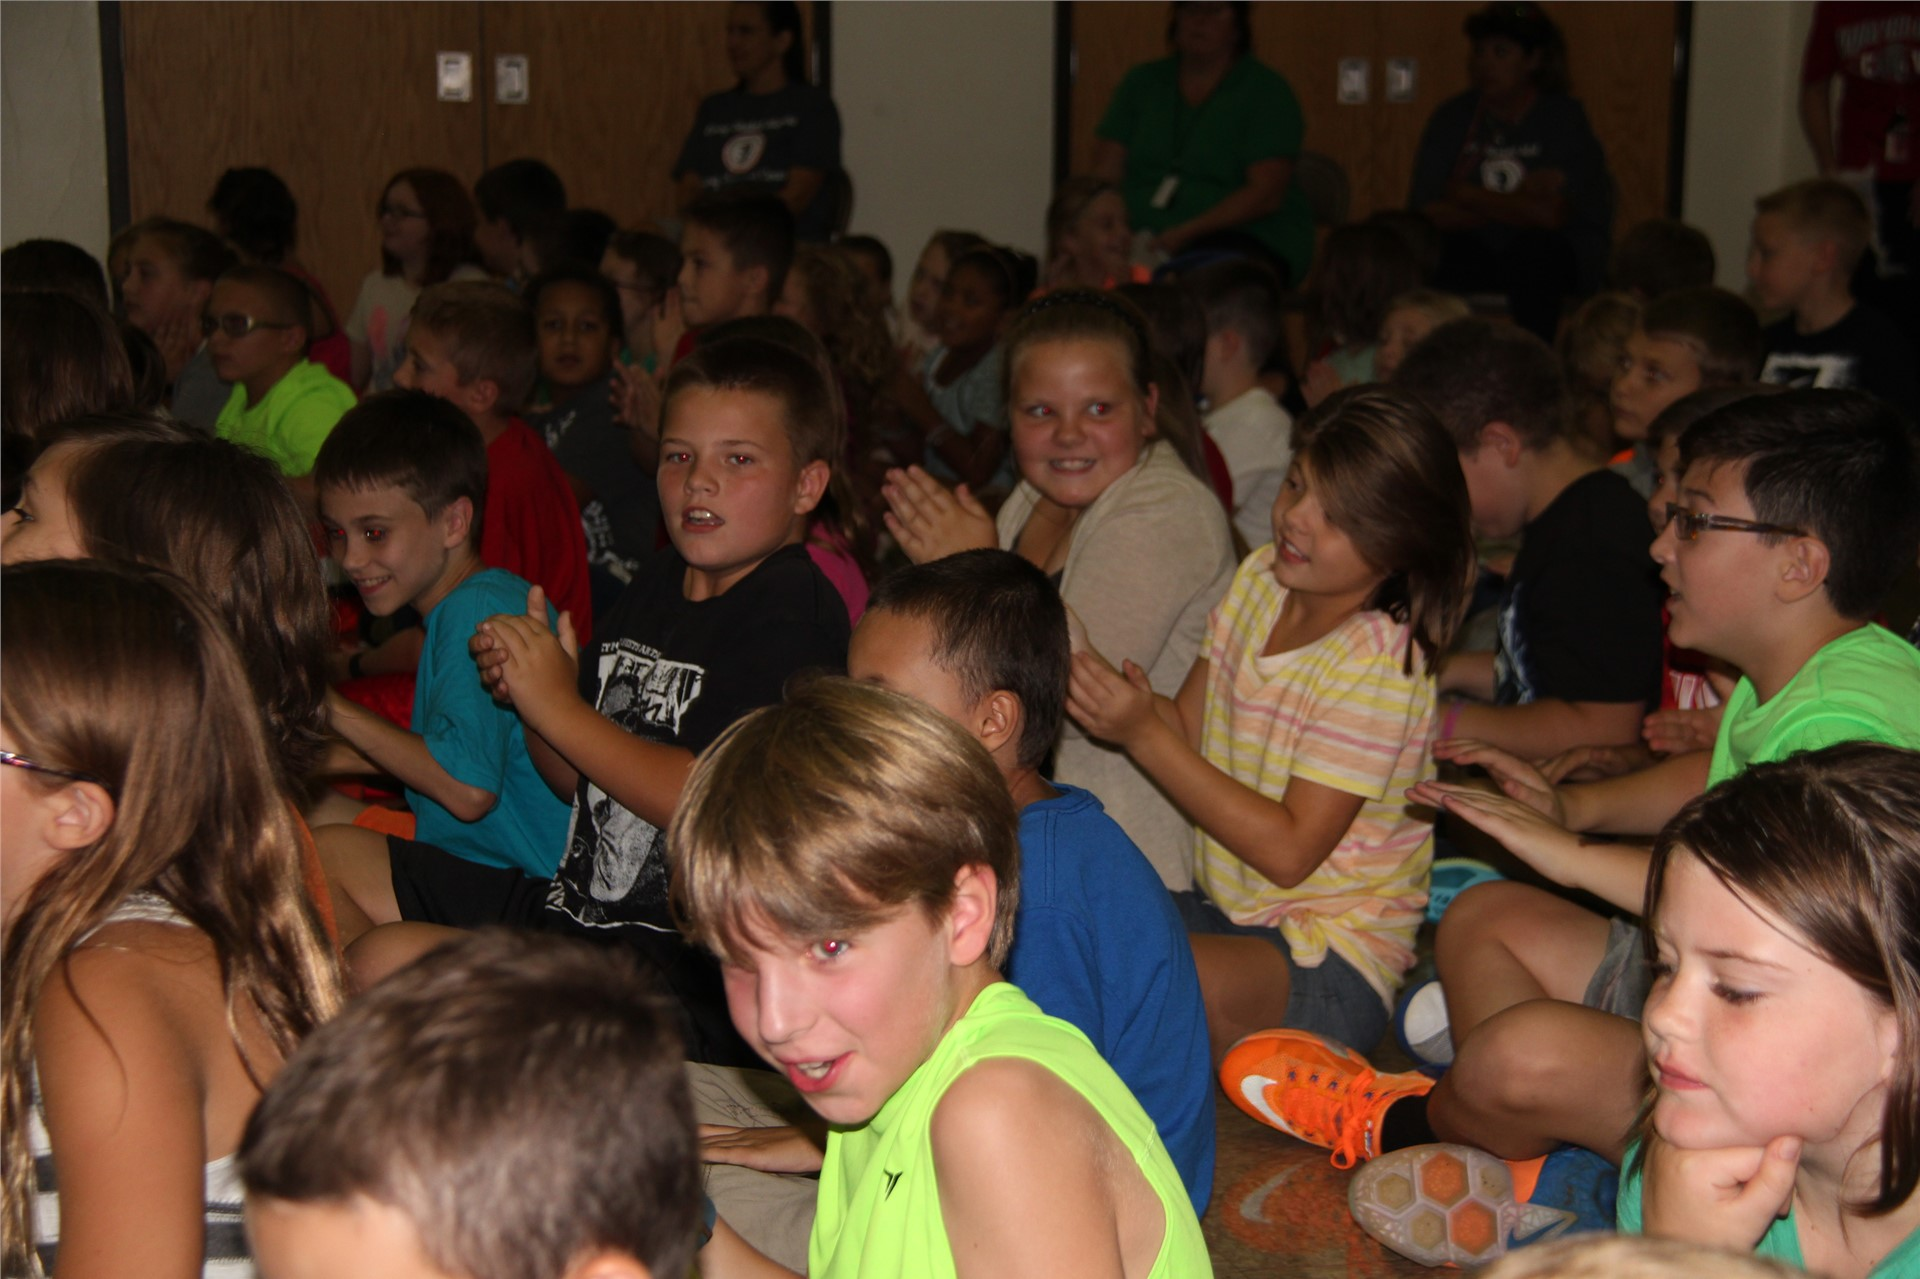 students listening to music